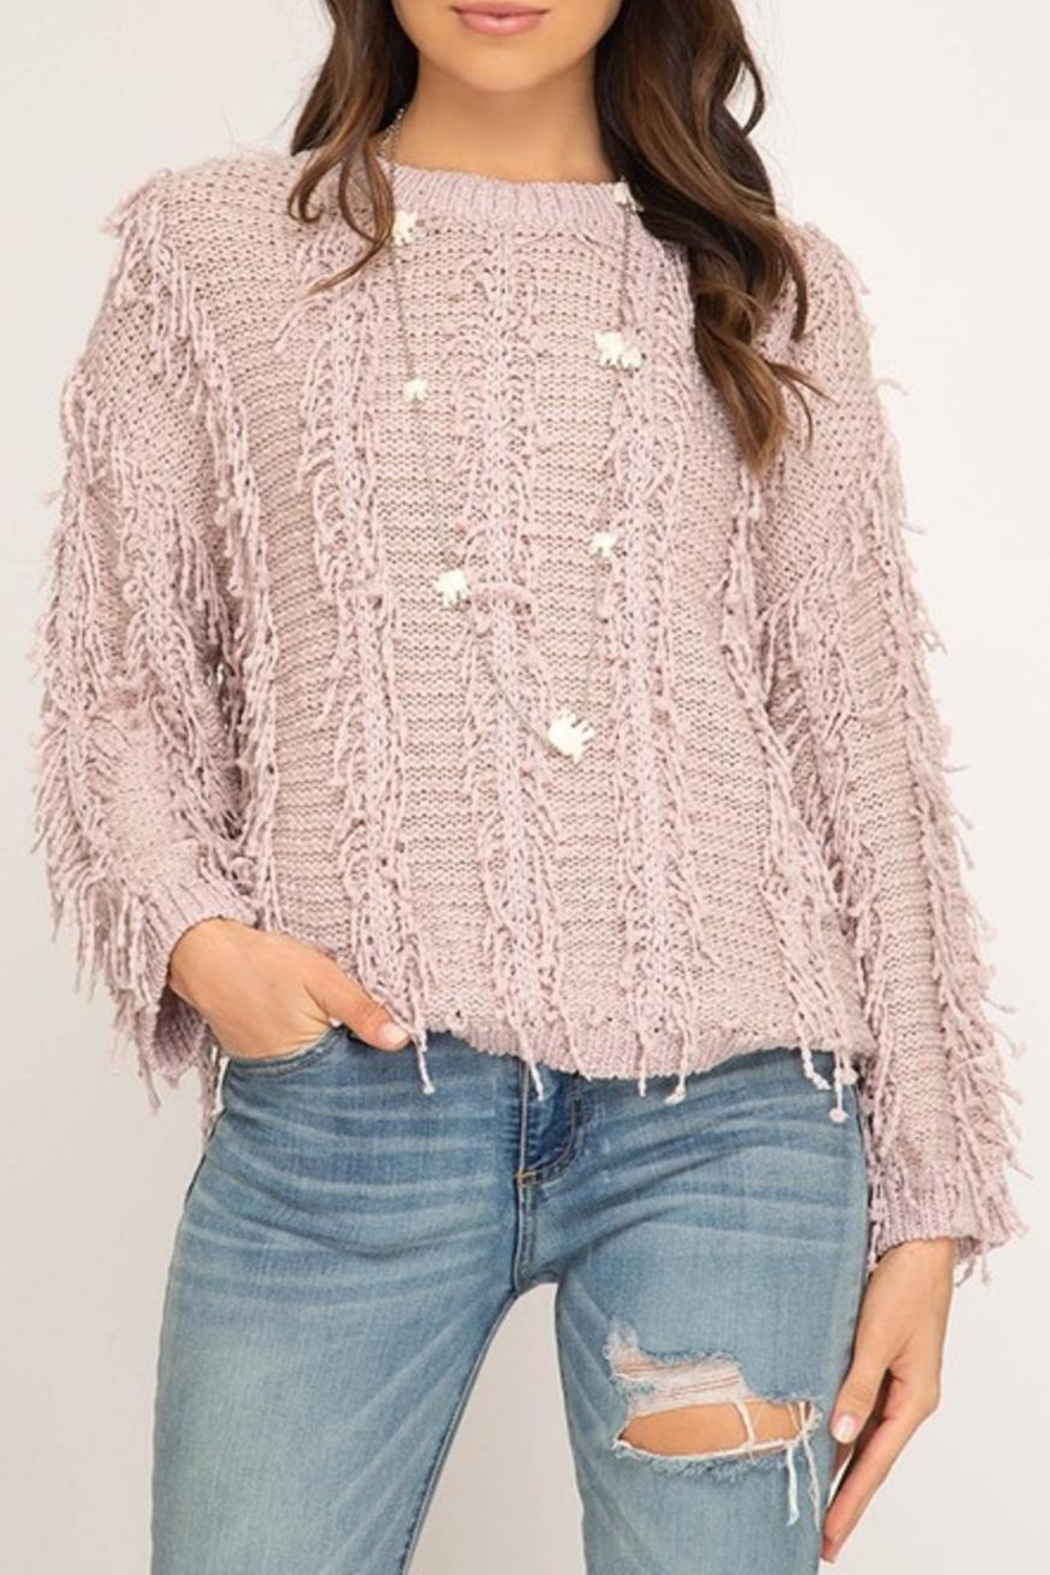 She Sky Fuzzy Fringe Sweater From Long Island By Epic Stores